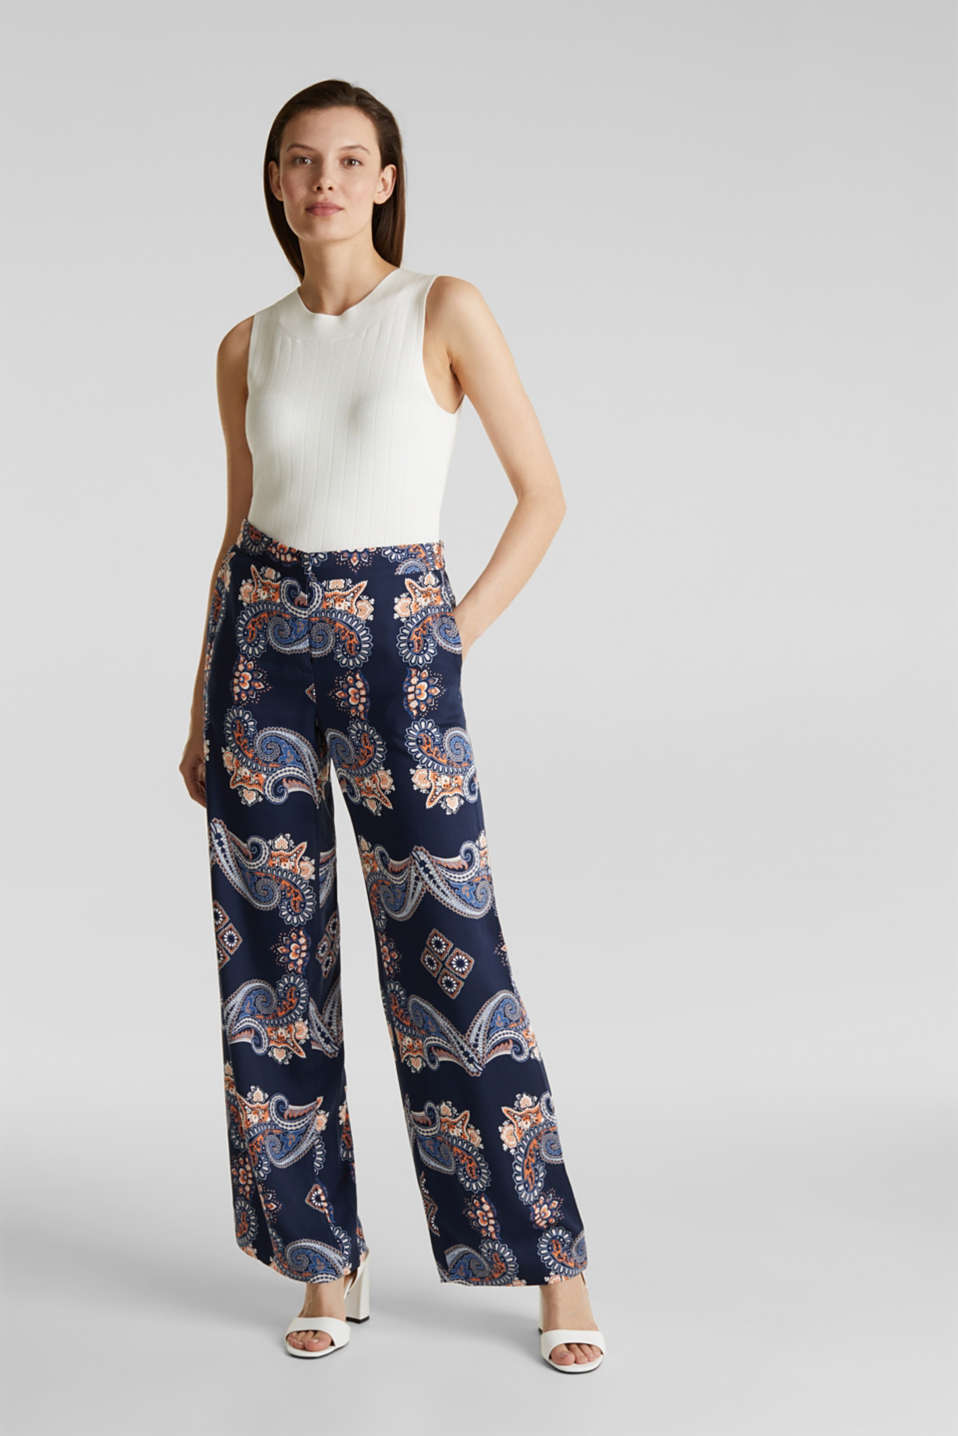 Esprit - Flowing palazzo trousers with a print